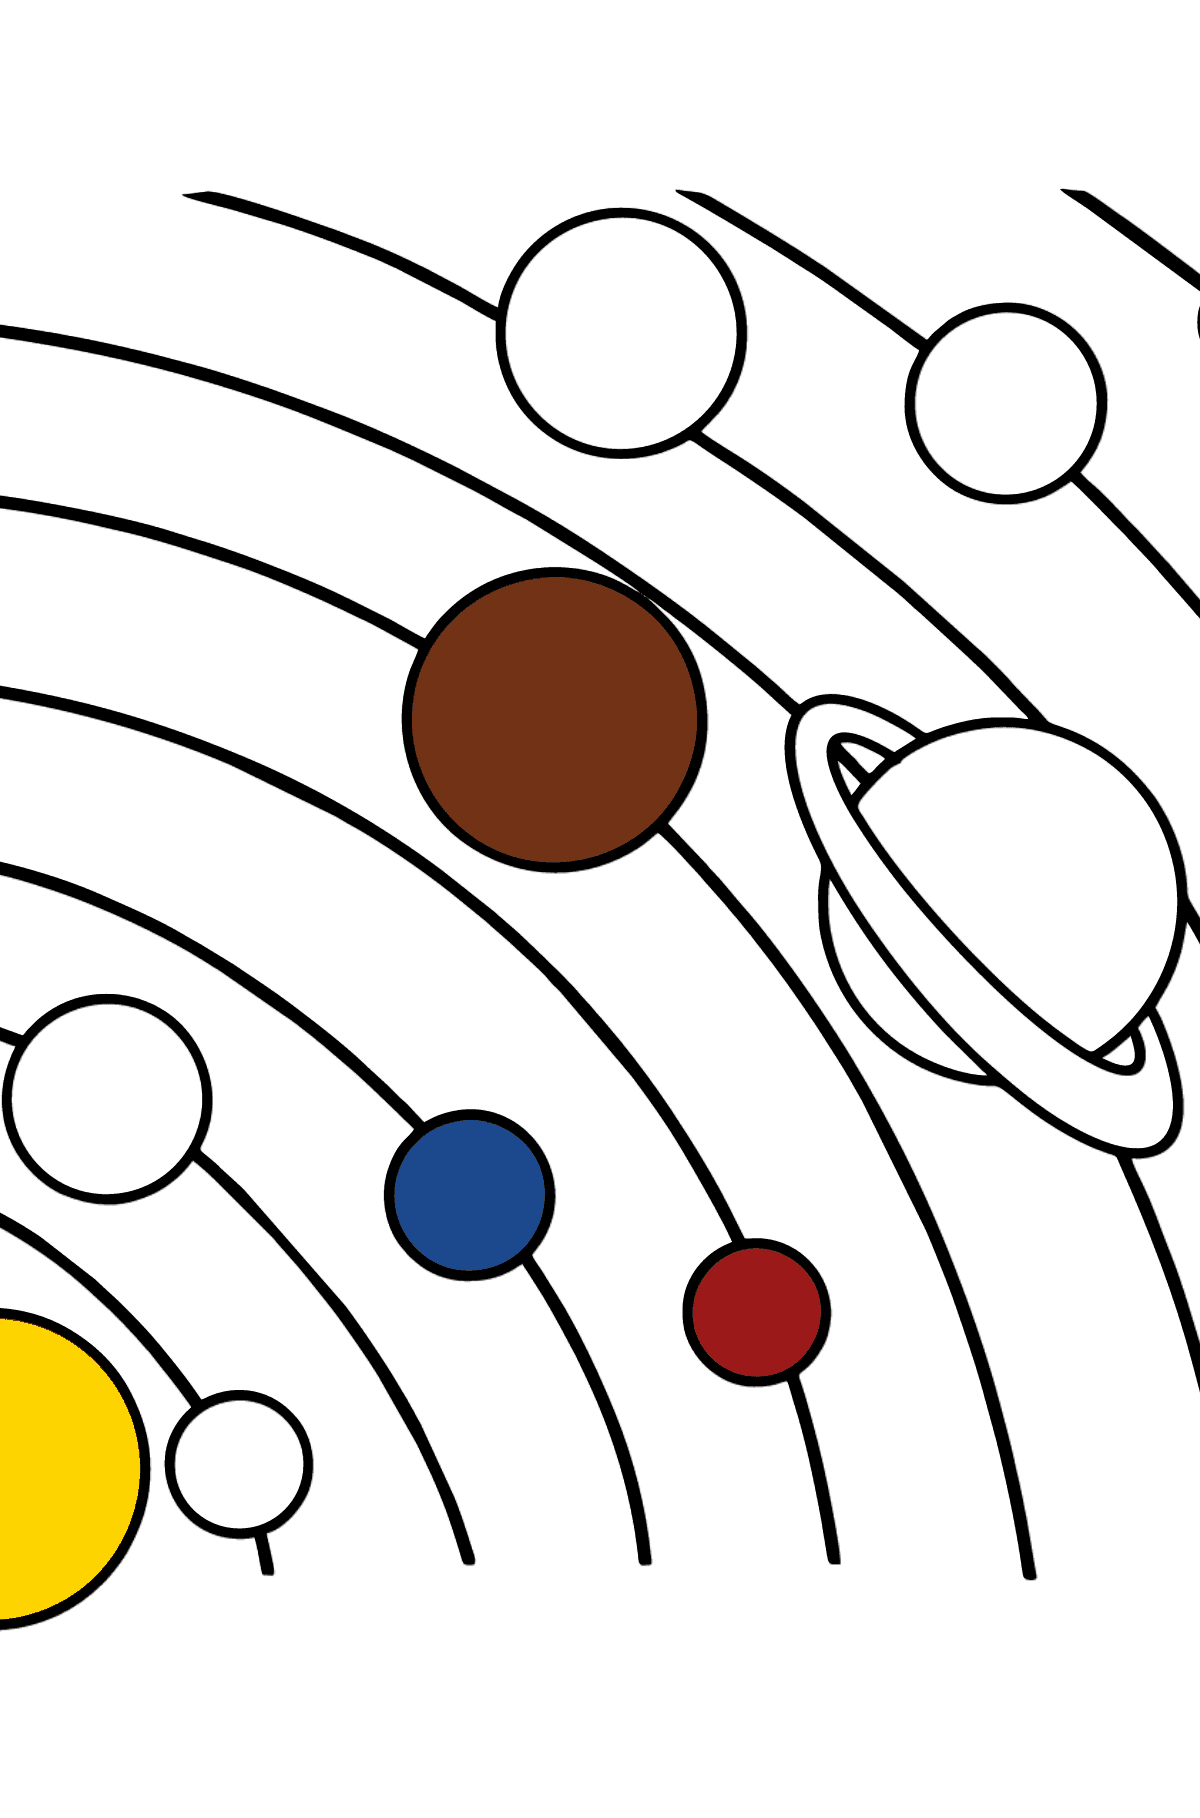 Solar System - Simple coloring page - Coloring Pages for Kids